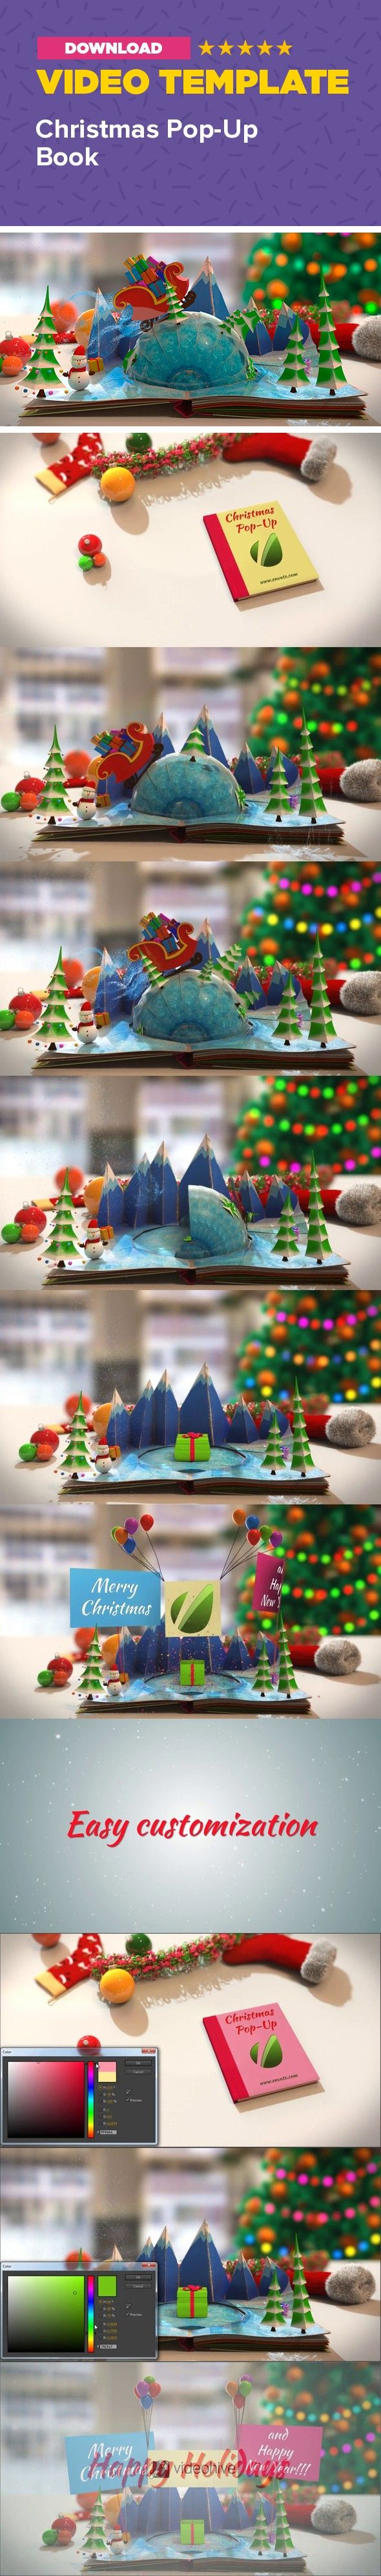 3d, animation, book, card, christmas, greetings, happy new year, holiday, logo, magical, merry christmas, pop up, present, snow, xmas Hi guys! Finally I've finished my new Christmas project. It's great for holiday greetings Very easy to customise, just drop your logo, type text and change colors with Color Control. Merry Christmas!  Please check my new Christmas Pop-Up Book 2  Check my other Christmas projects:                                              Information:      Easy to…